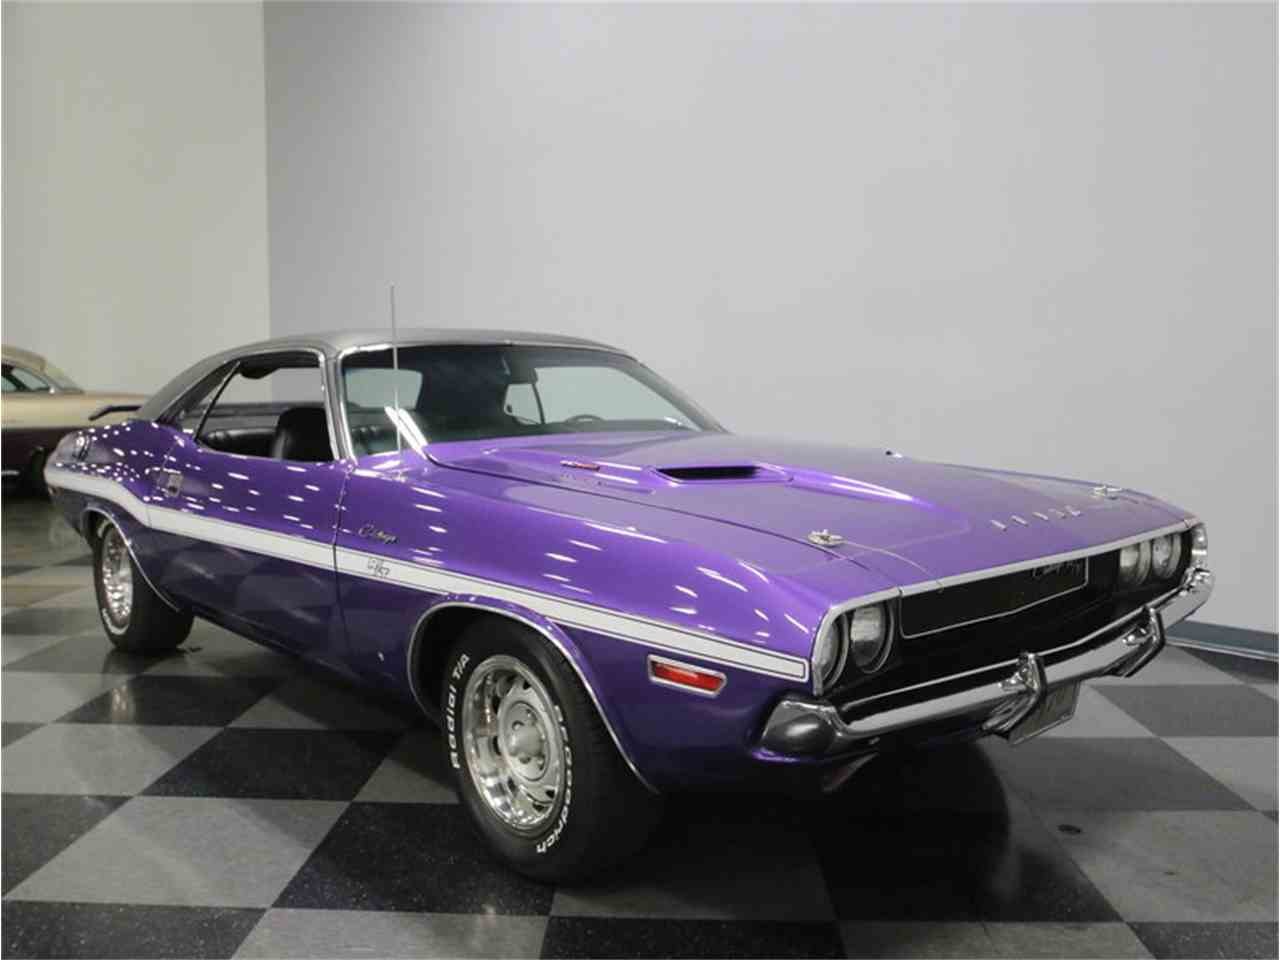 Large Picture of 1970 Dodge Challenger R/T located in Tennessee Offered by Streetside Classics - Nashville - M29Z